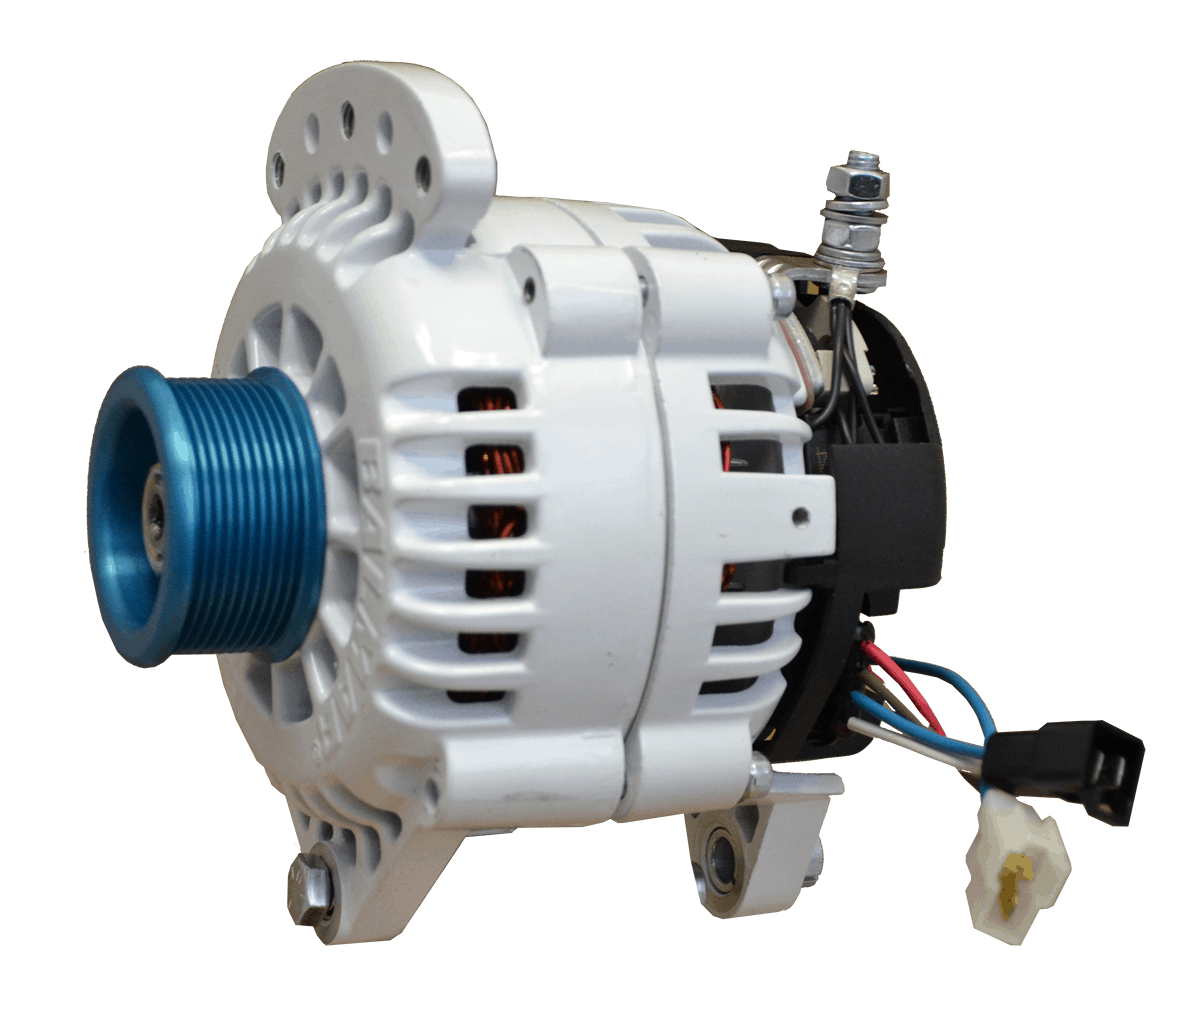 165 Mercruiser Alternator Conversion Kit : Alternator j